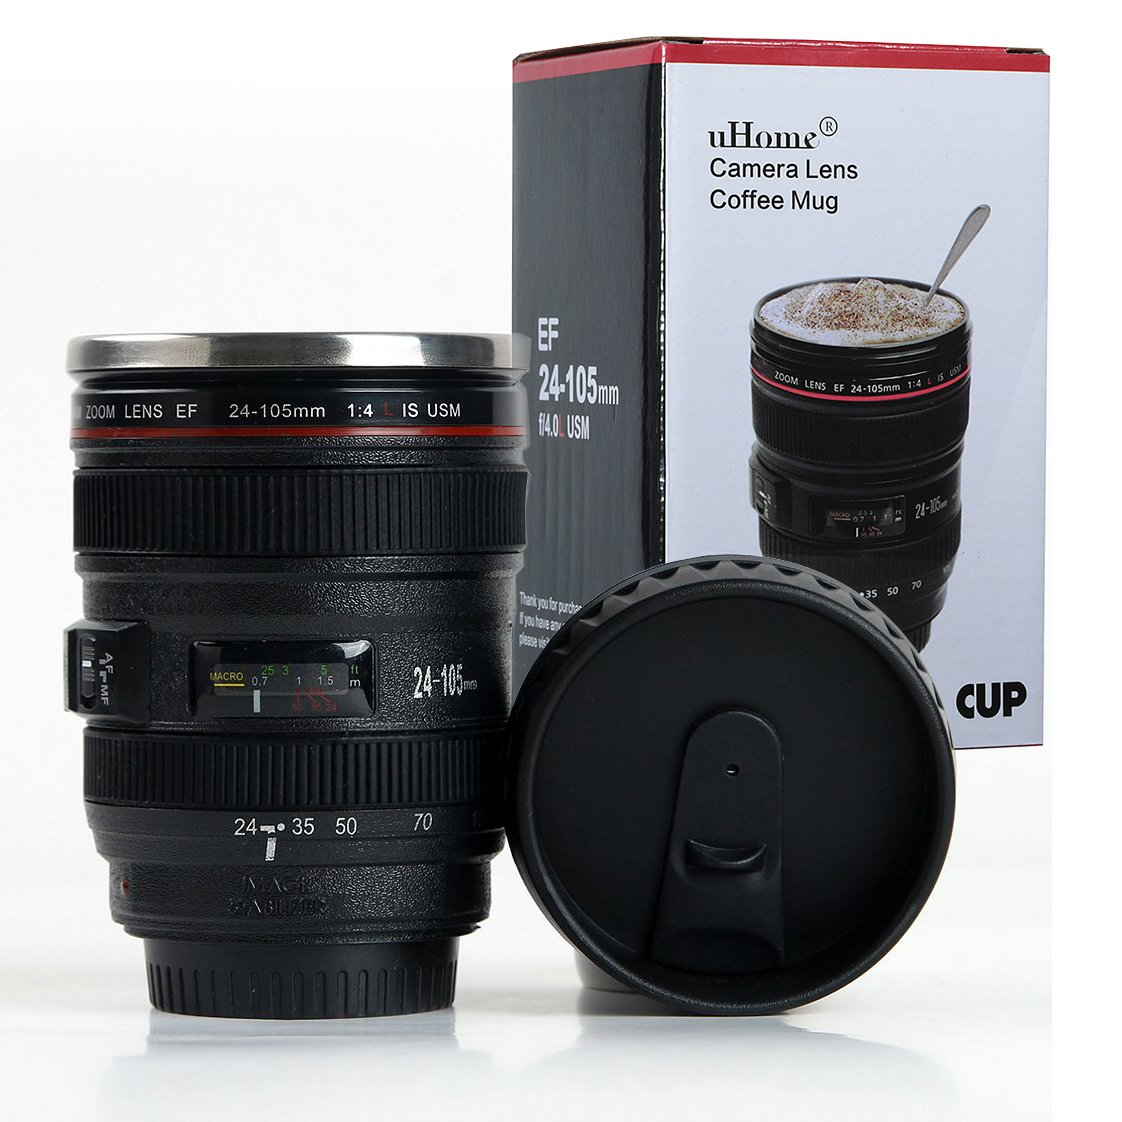 gifts for photographers under 20 dollars cup